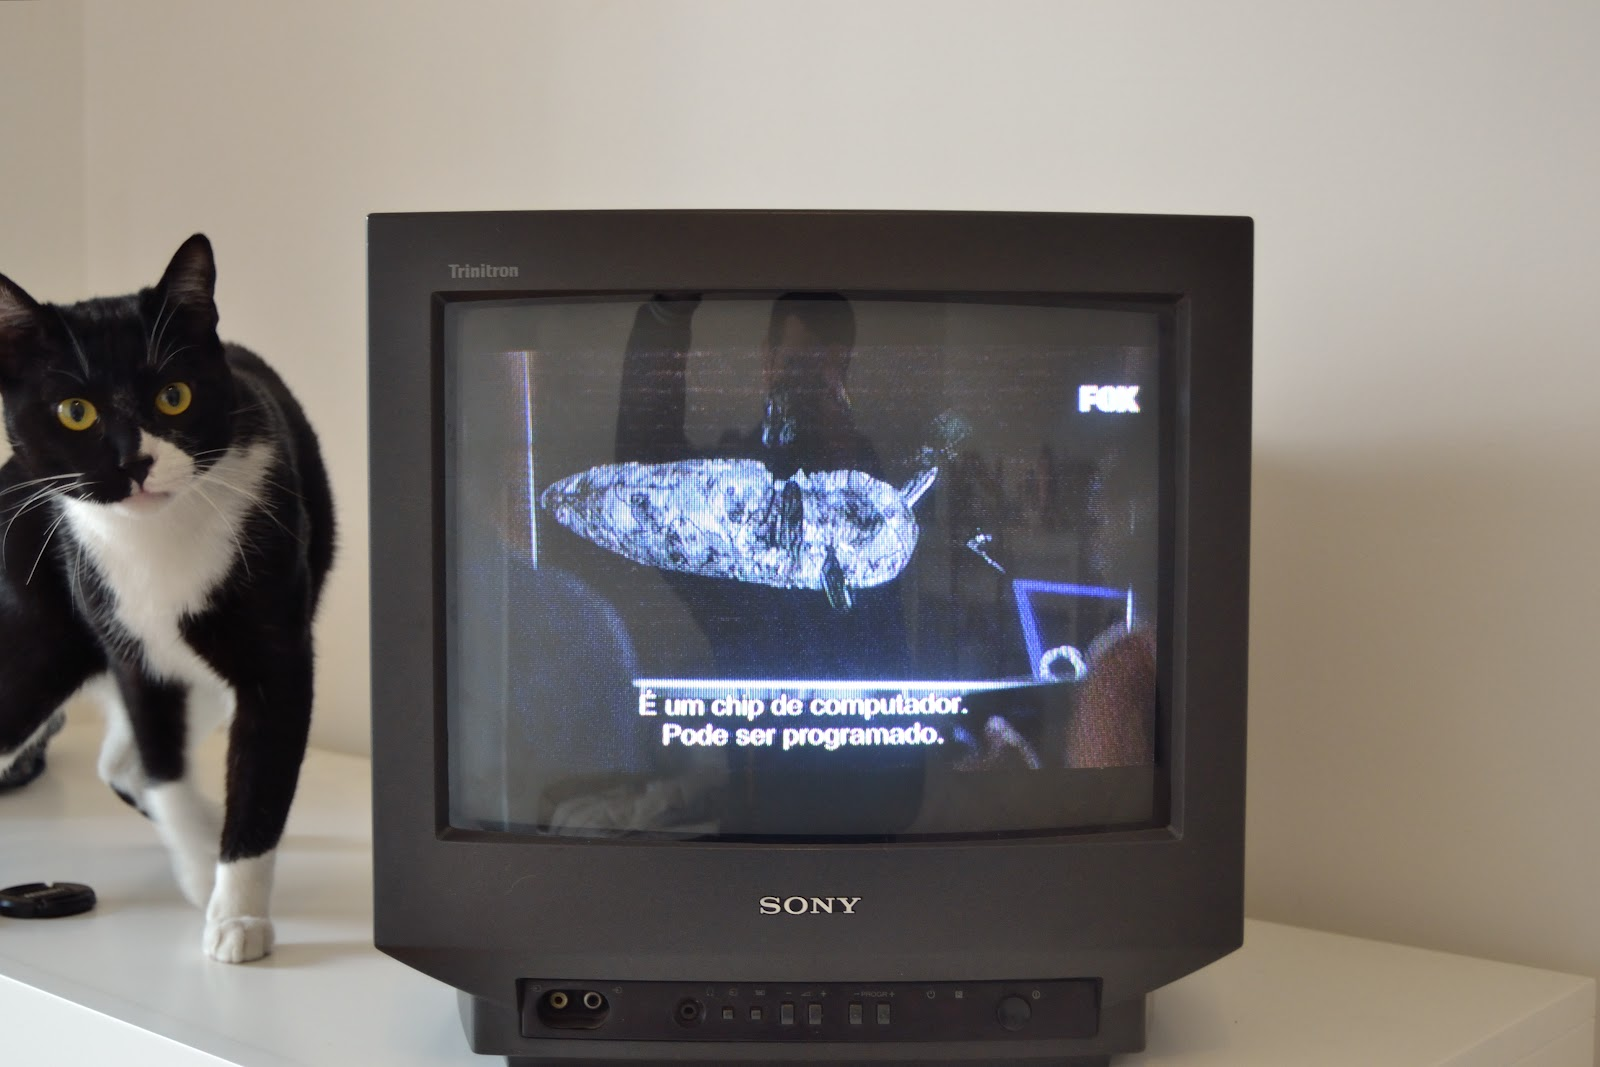 sony tv small. tech gore galore: disassembly and repair: sony triniton crt tv model kv-14m1e tv small